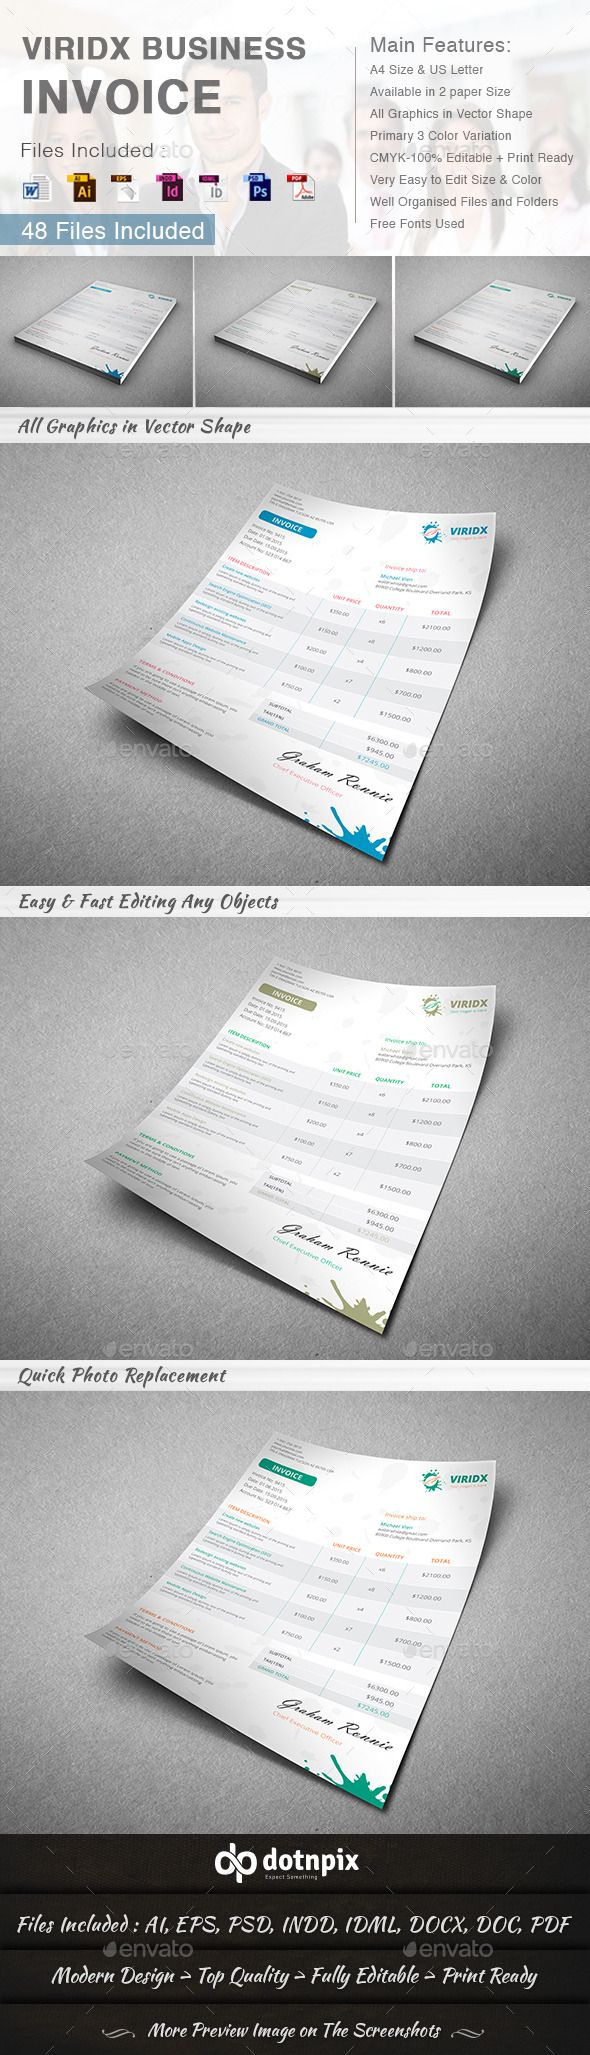 Viridx Business Invoice  Business Invoice Design And Business